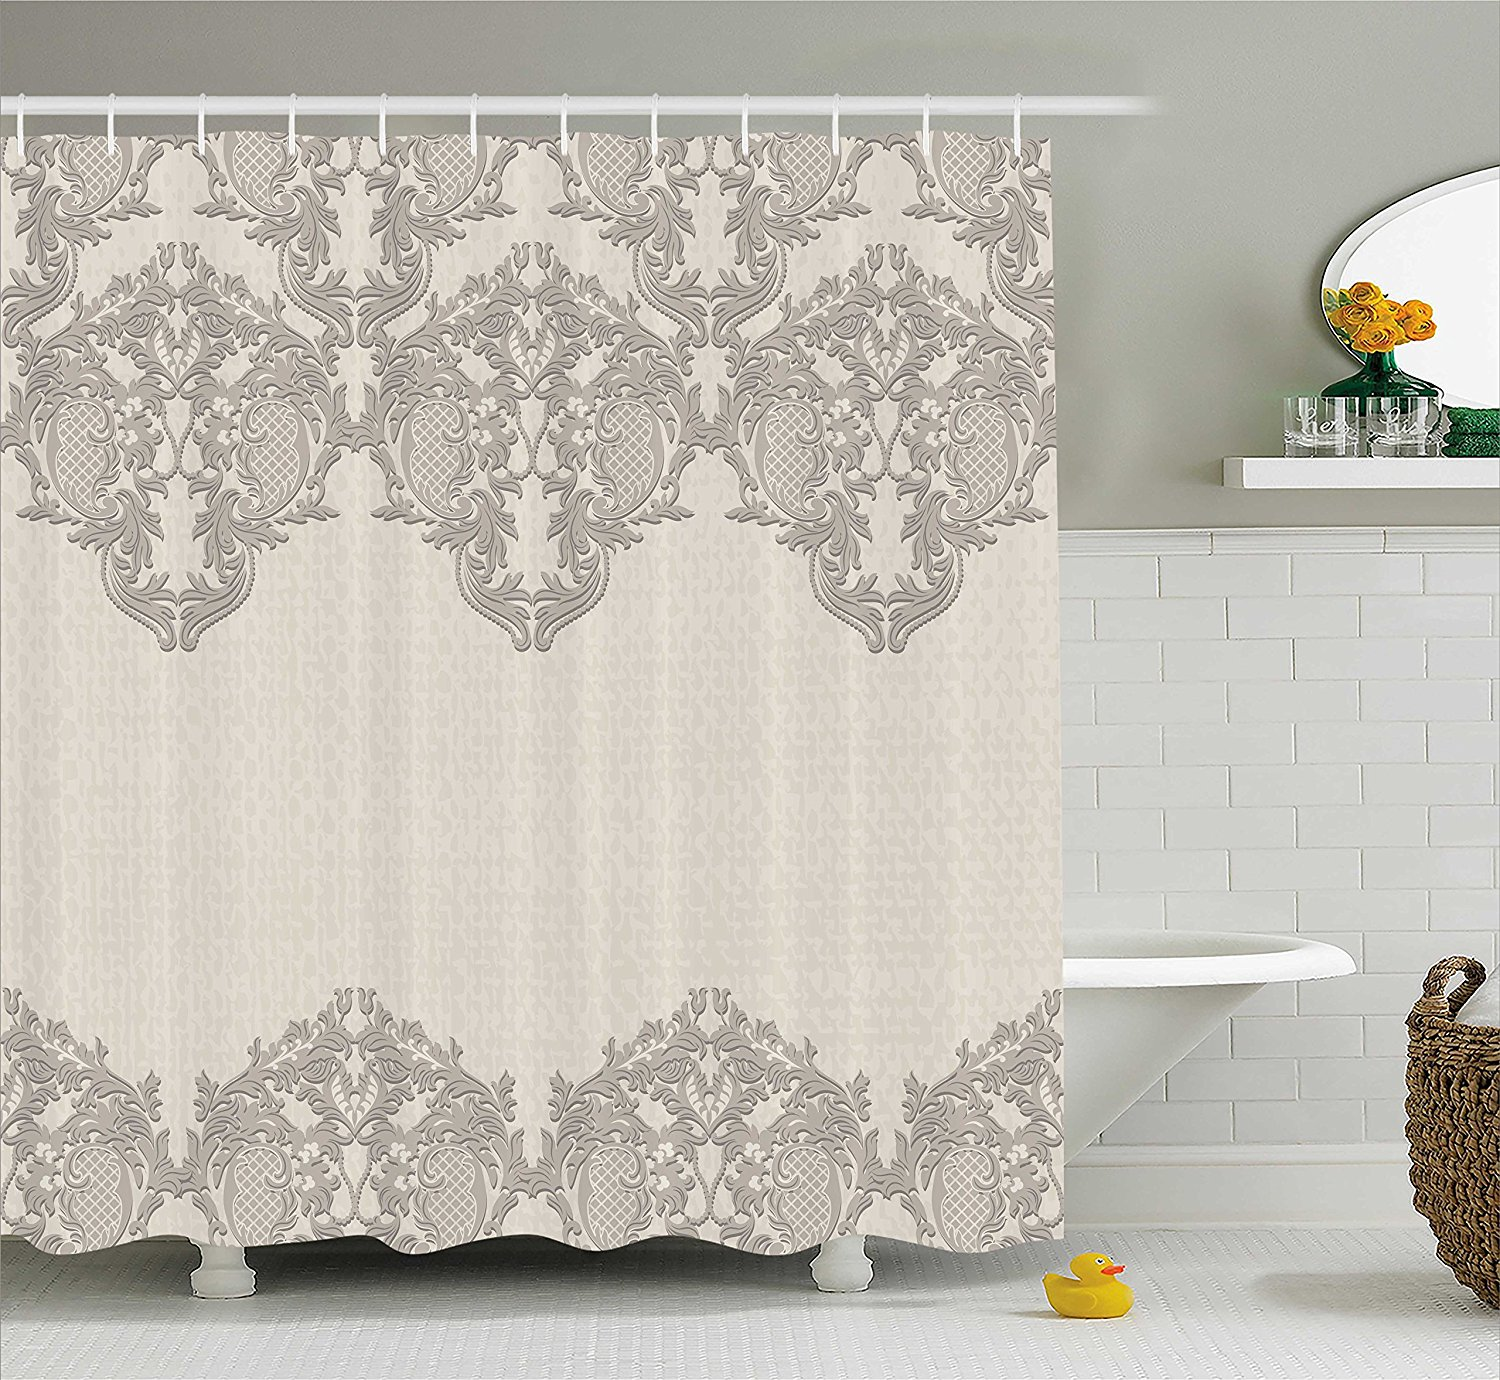 Taupe Shower Curtain Lace Like Framework Borders With Arabesque Details Delicate Intricate Retro Dated Print Decor Set In Curtains From Home Garden